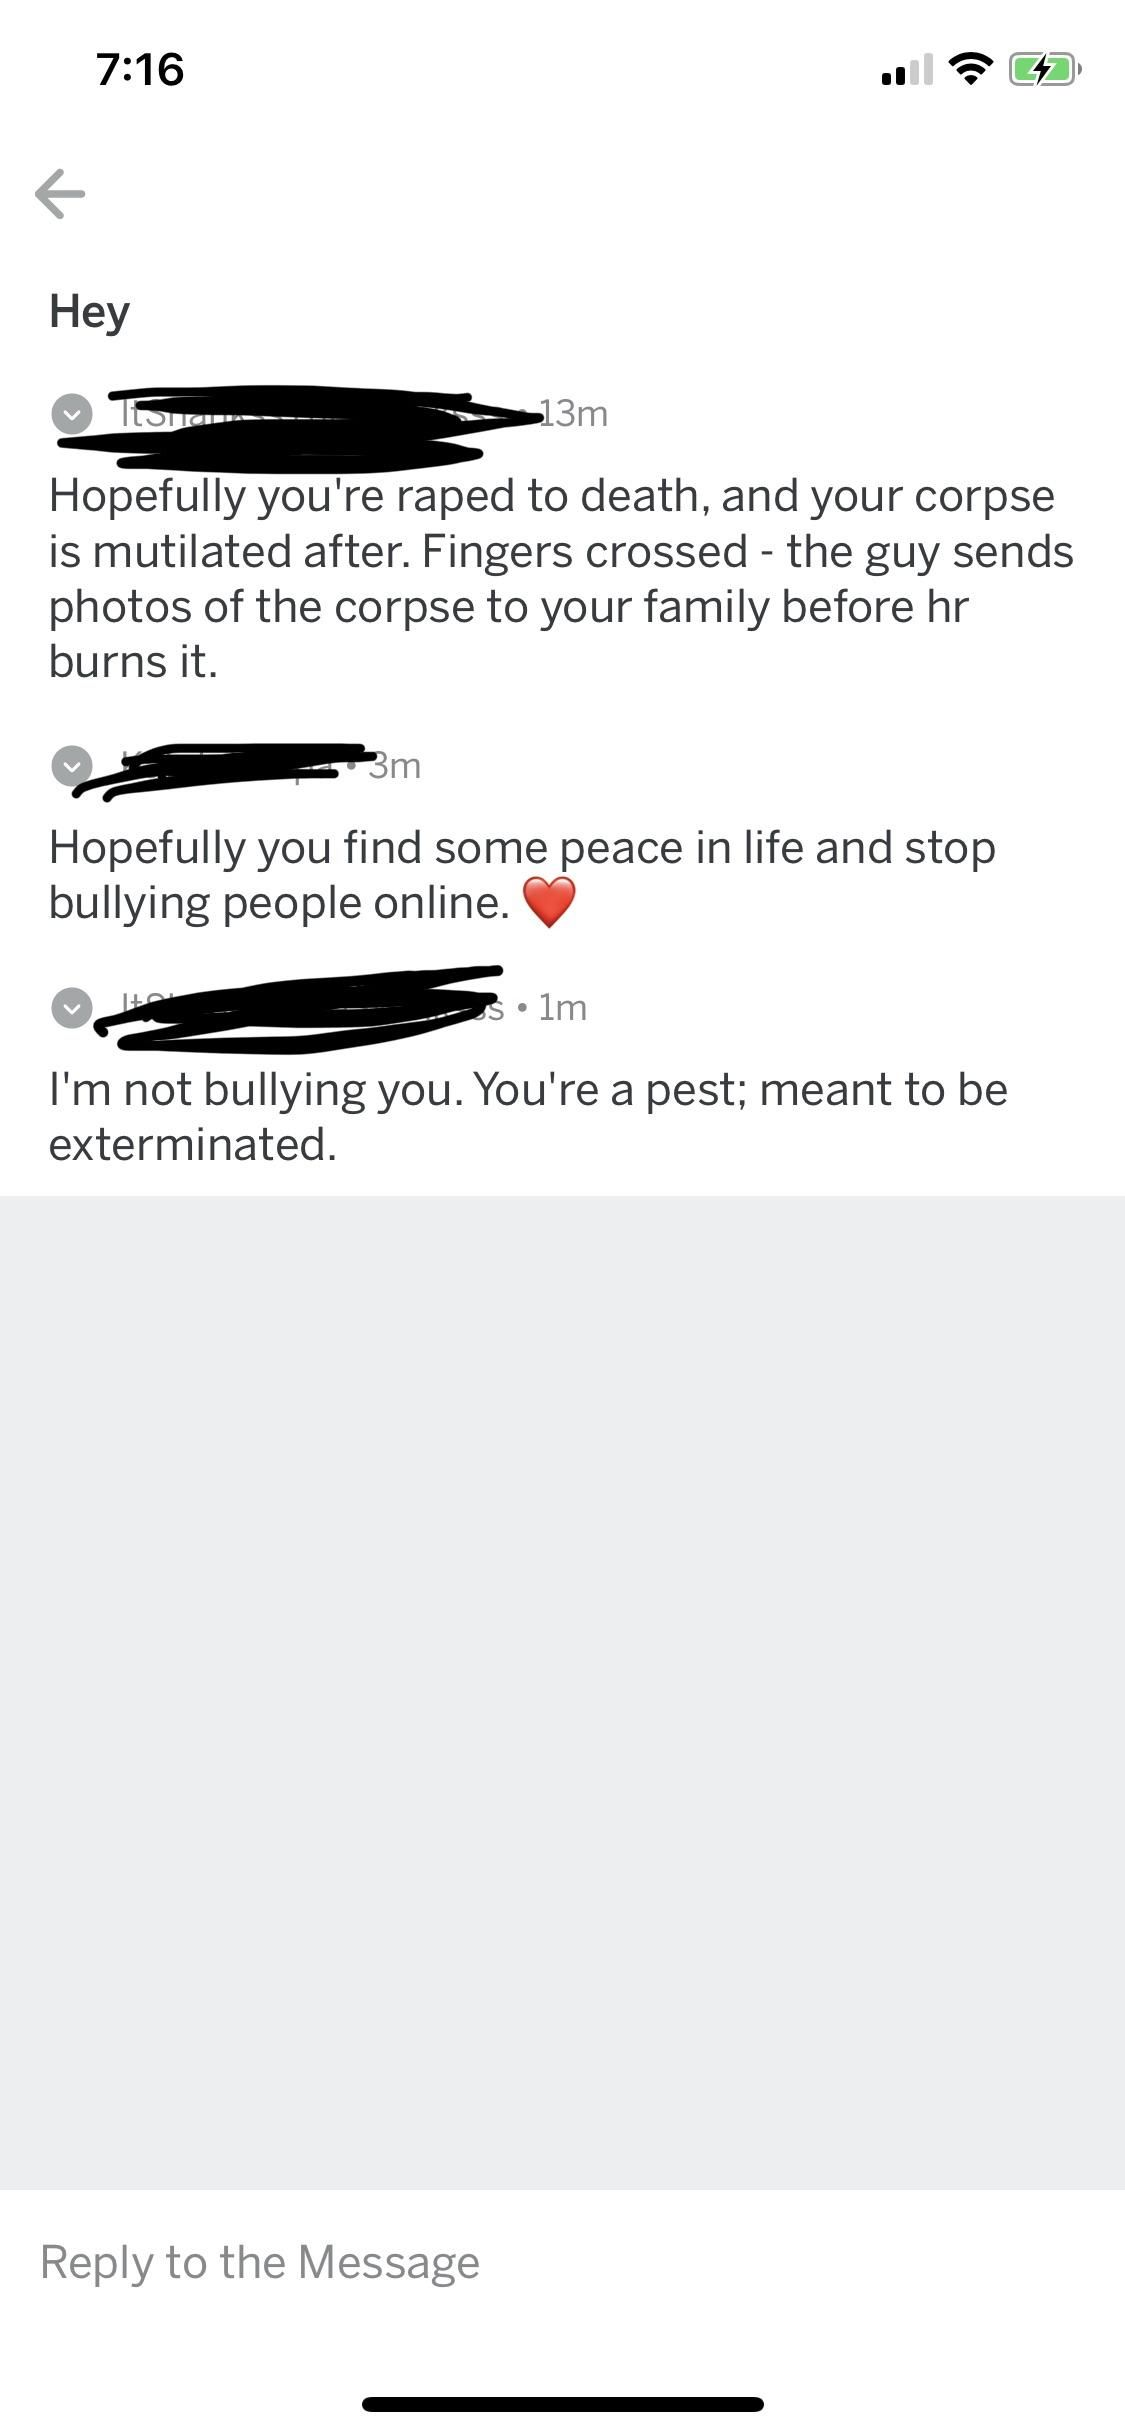 All because I said he was a douchebag for bullying someone